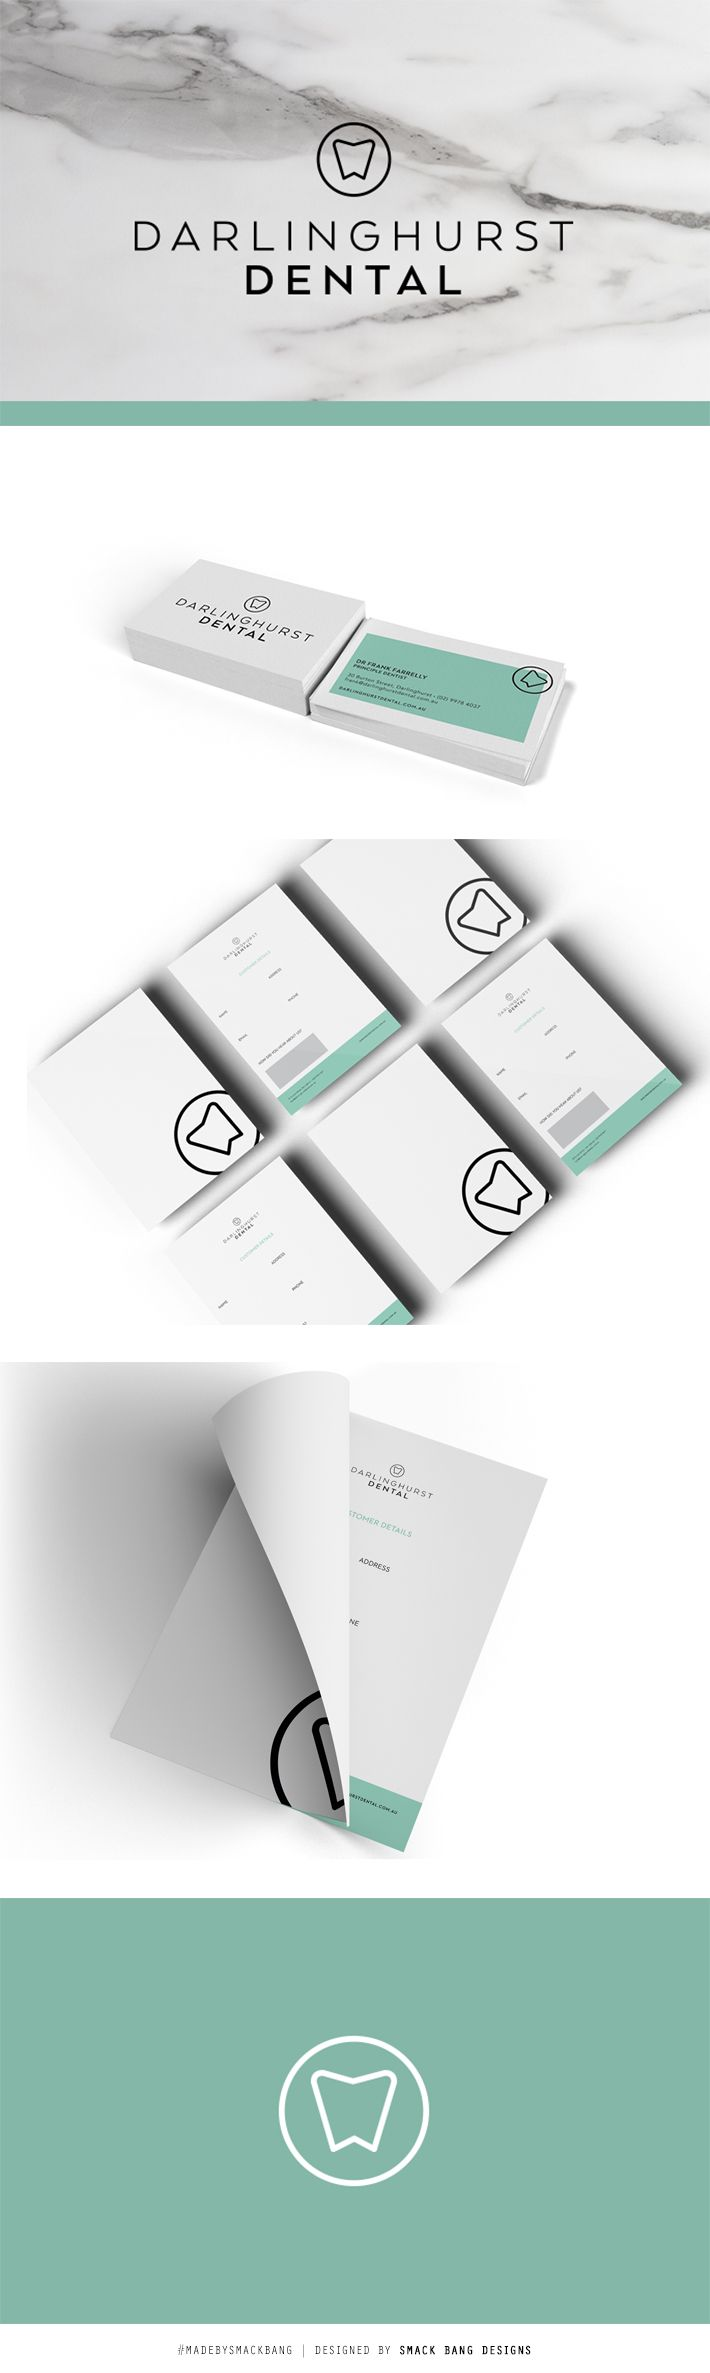 Darlinghurst Dental branding by Smack Bang Designs #Branding #BusinessCards #Logotype #Stationary #SmackBangDesigns #madebysmackbang